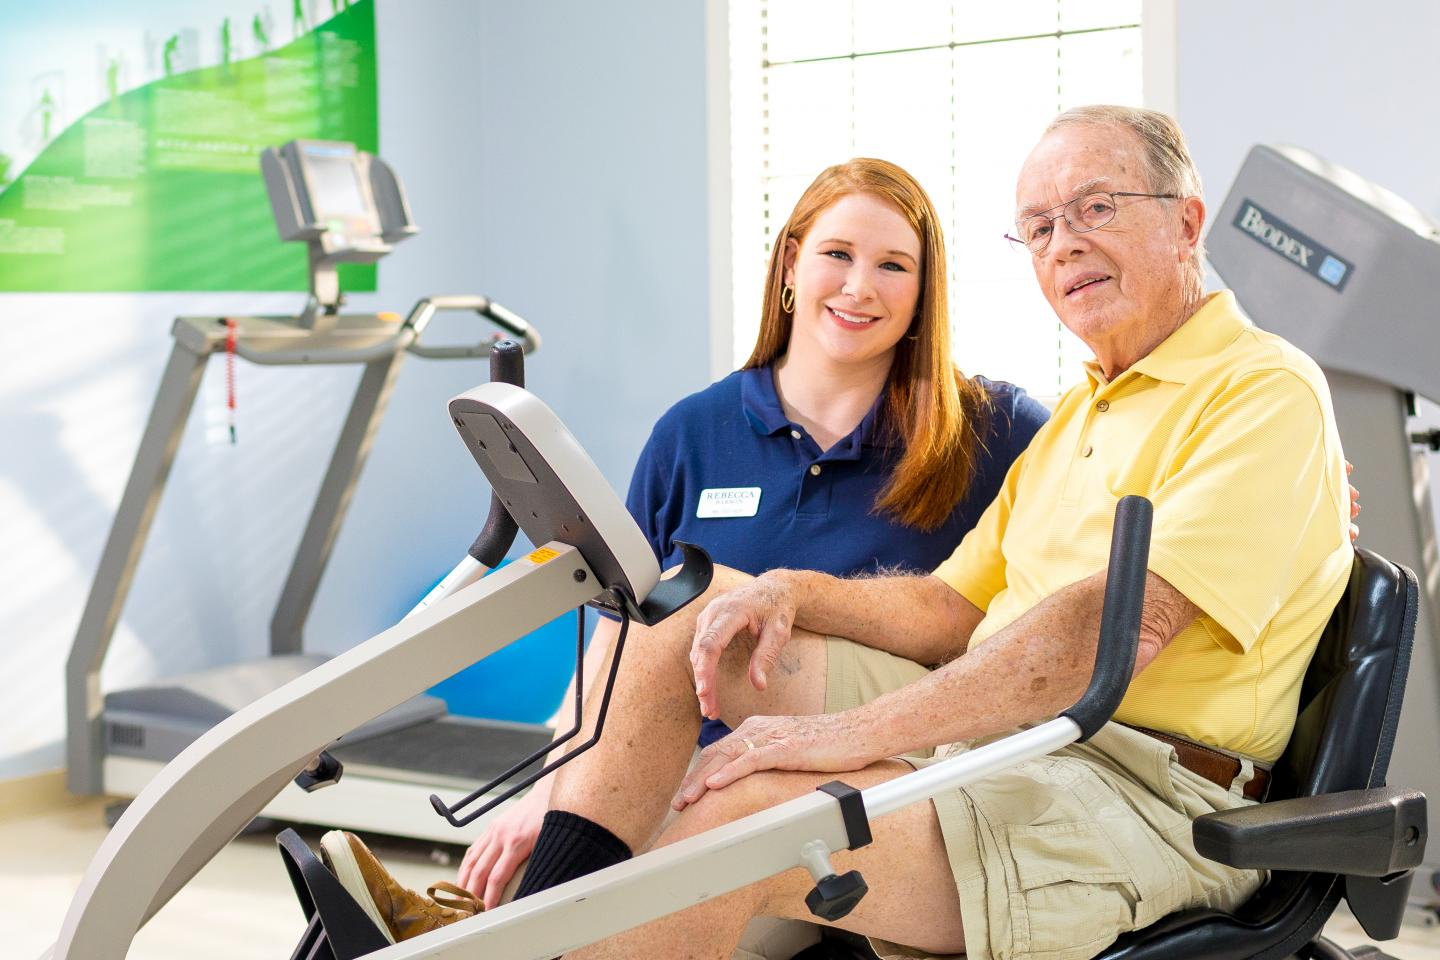 Bill Palmer with a LifeWorks Rehab Therapist